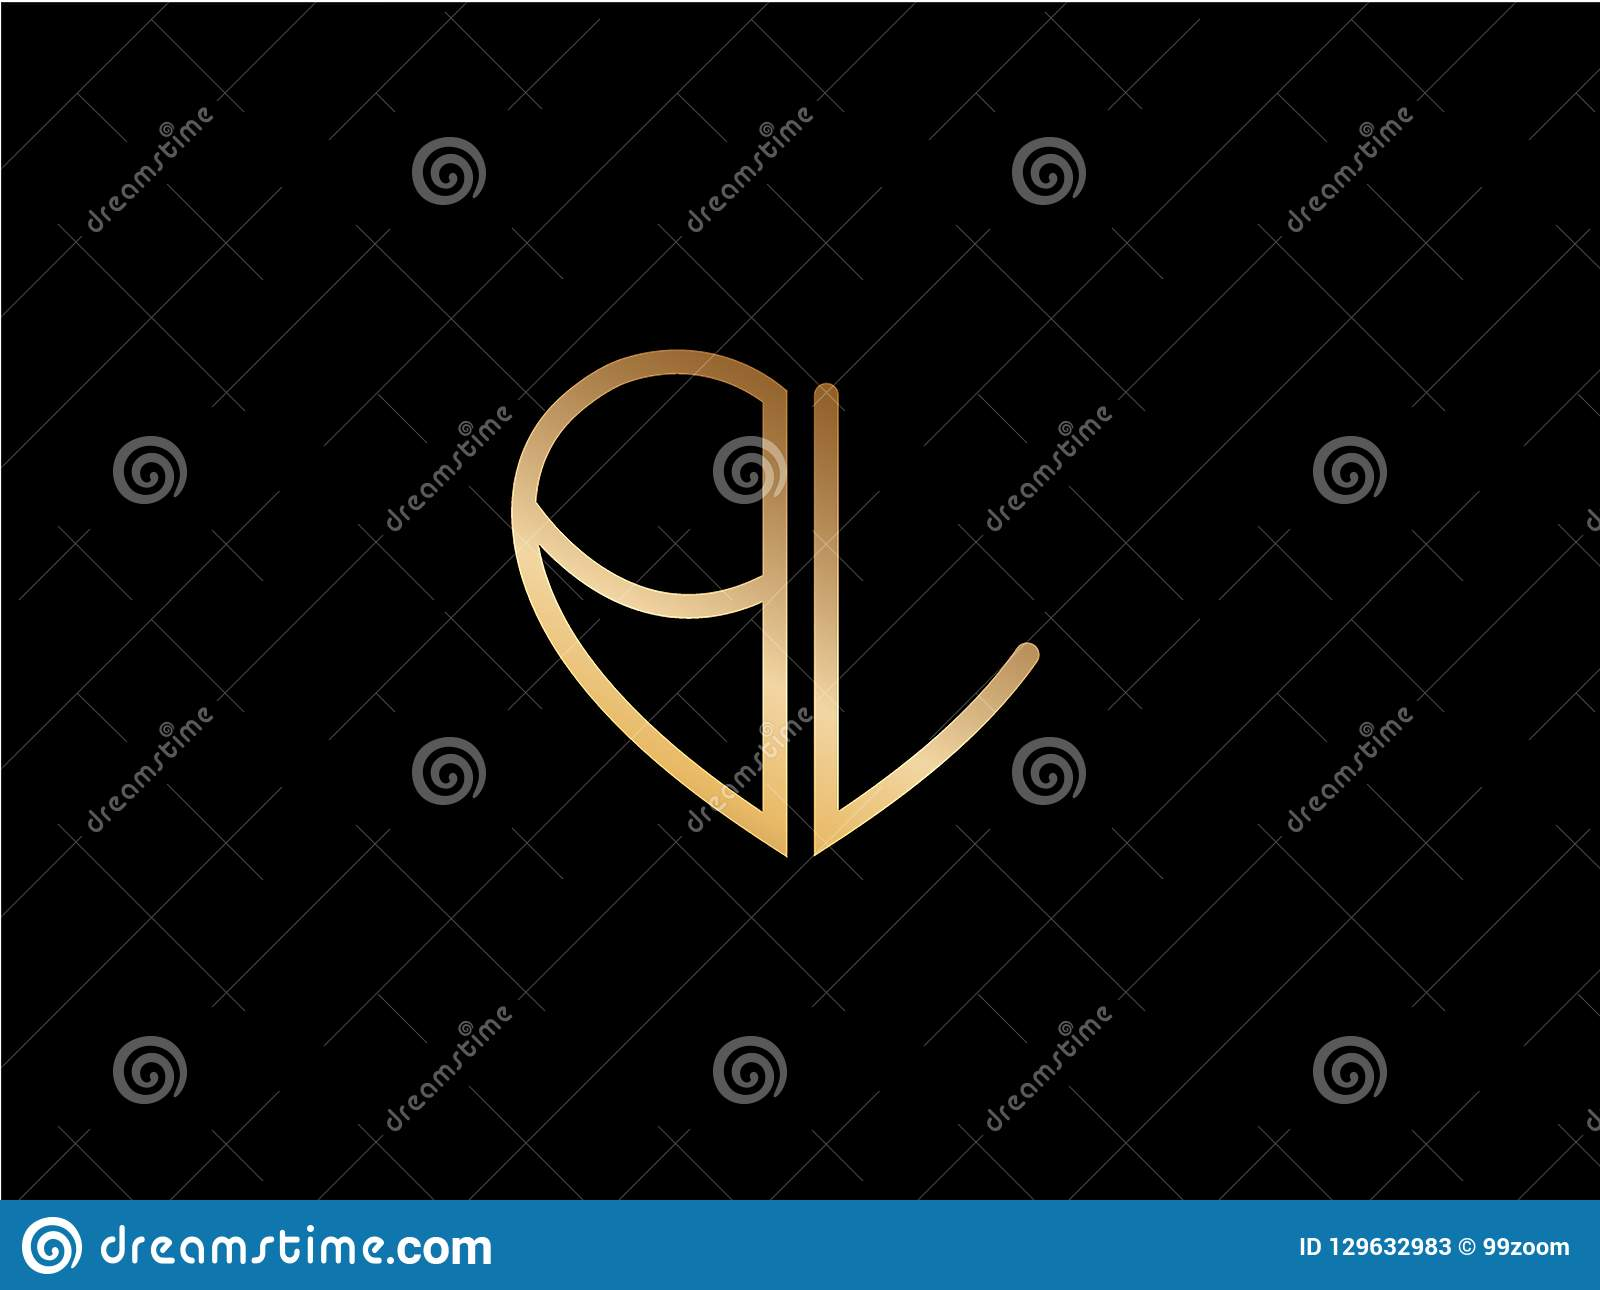 Bl Initial Heart Shape Gold Colored Logo Stock Illustration